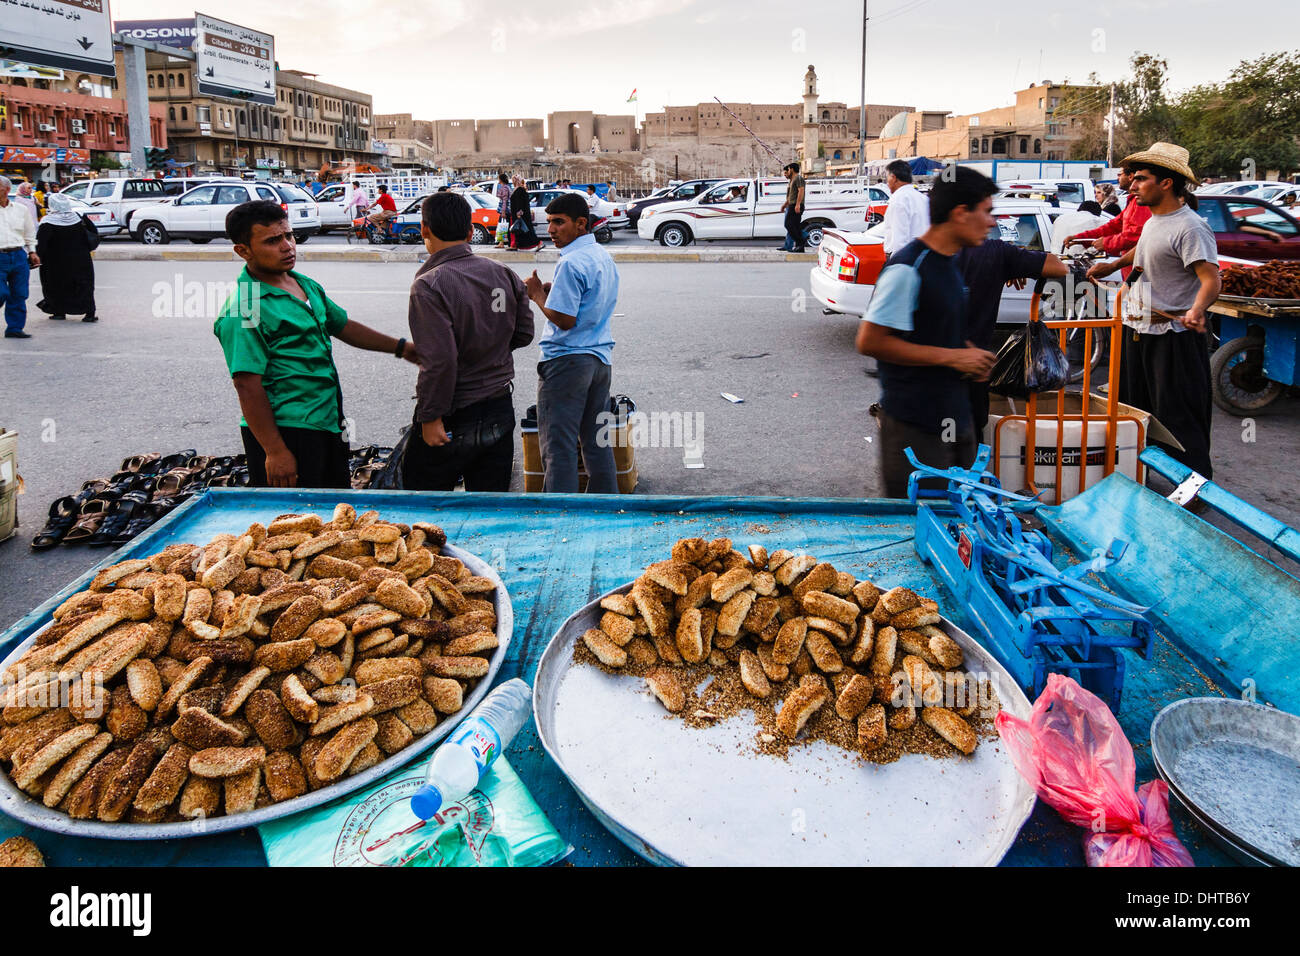 Pastries sold in a street market with citadel in background. Erbil, Iraq - Stock Image